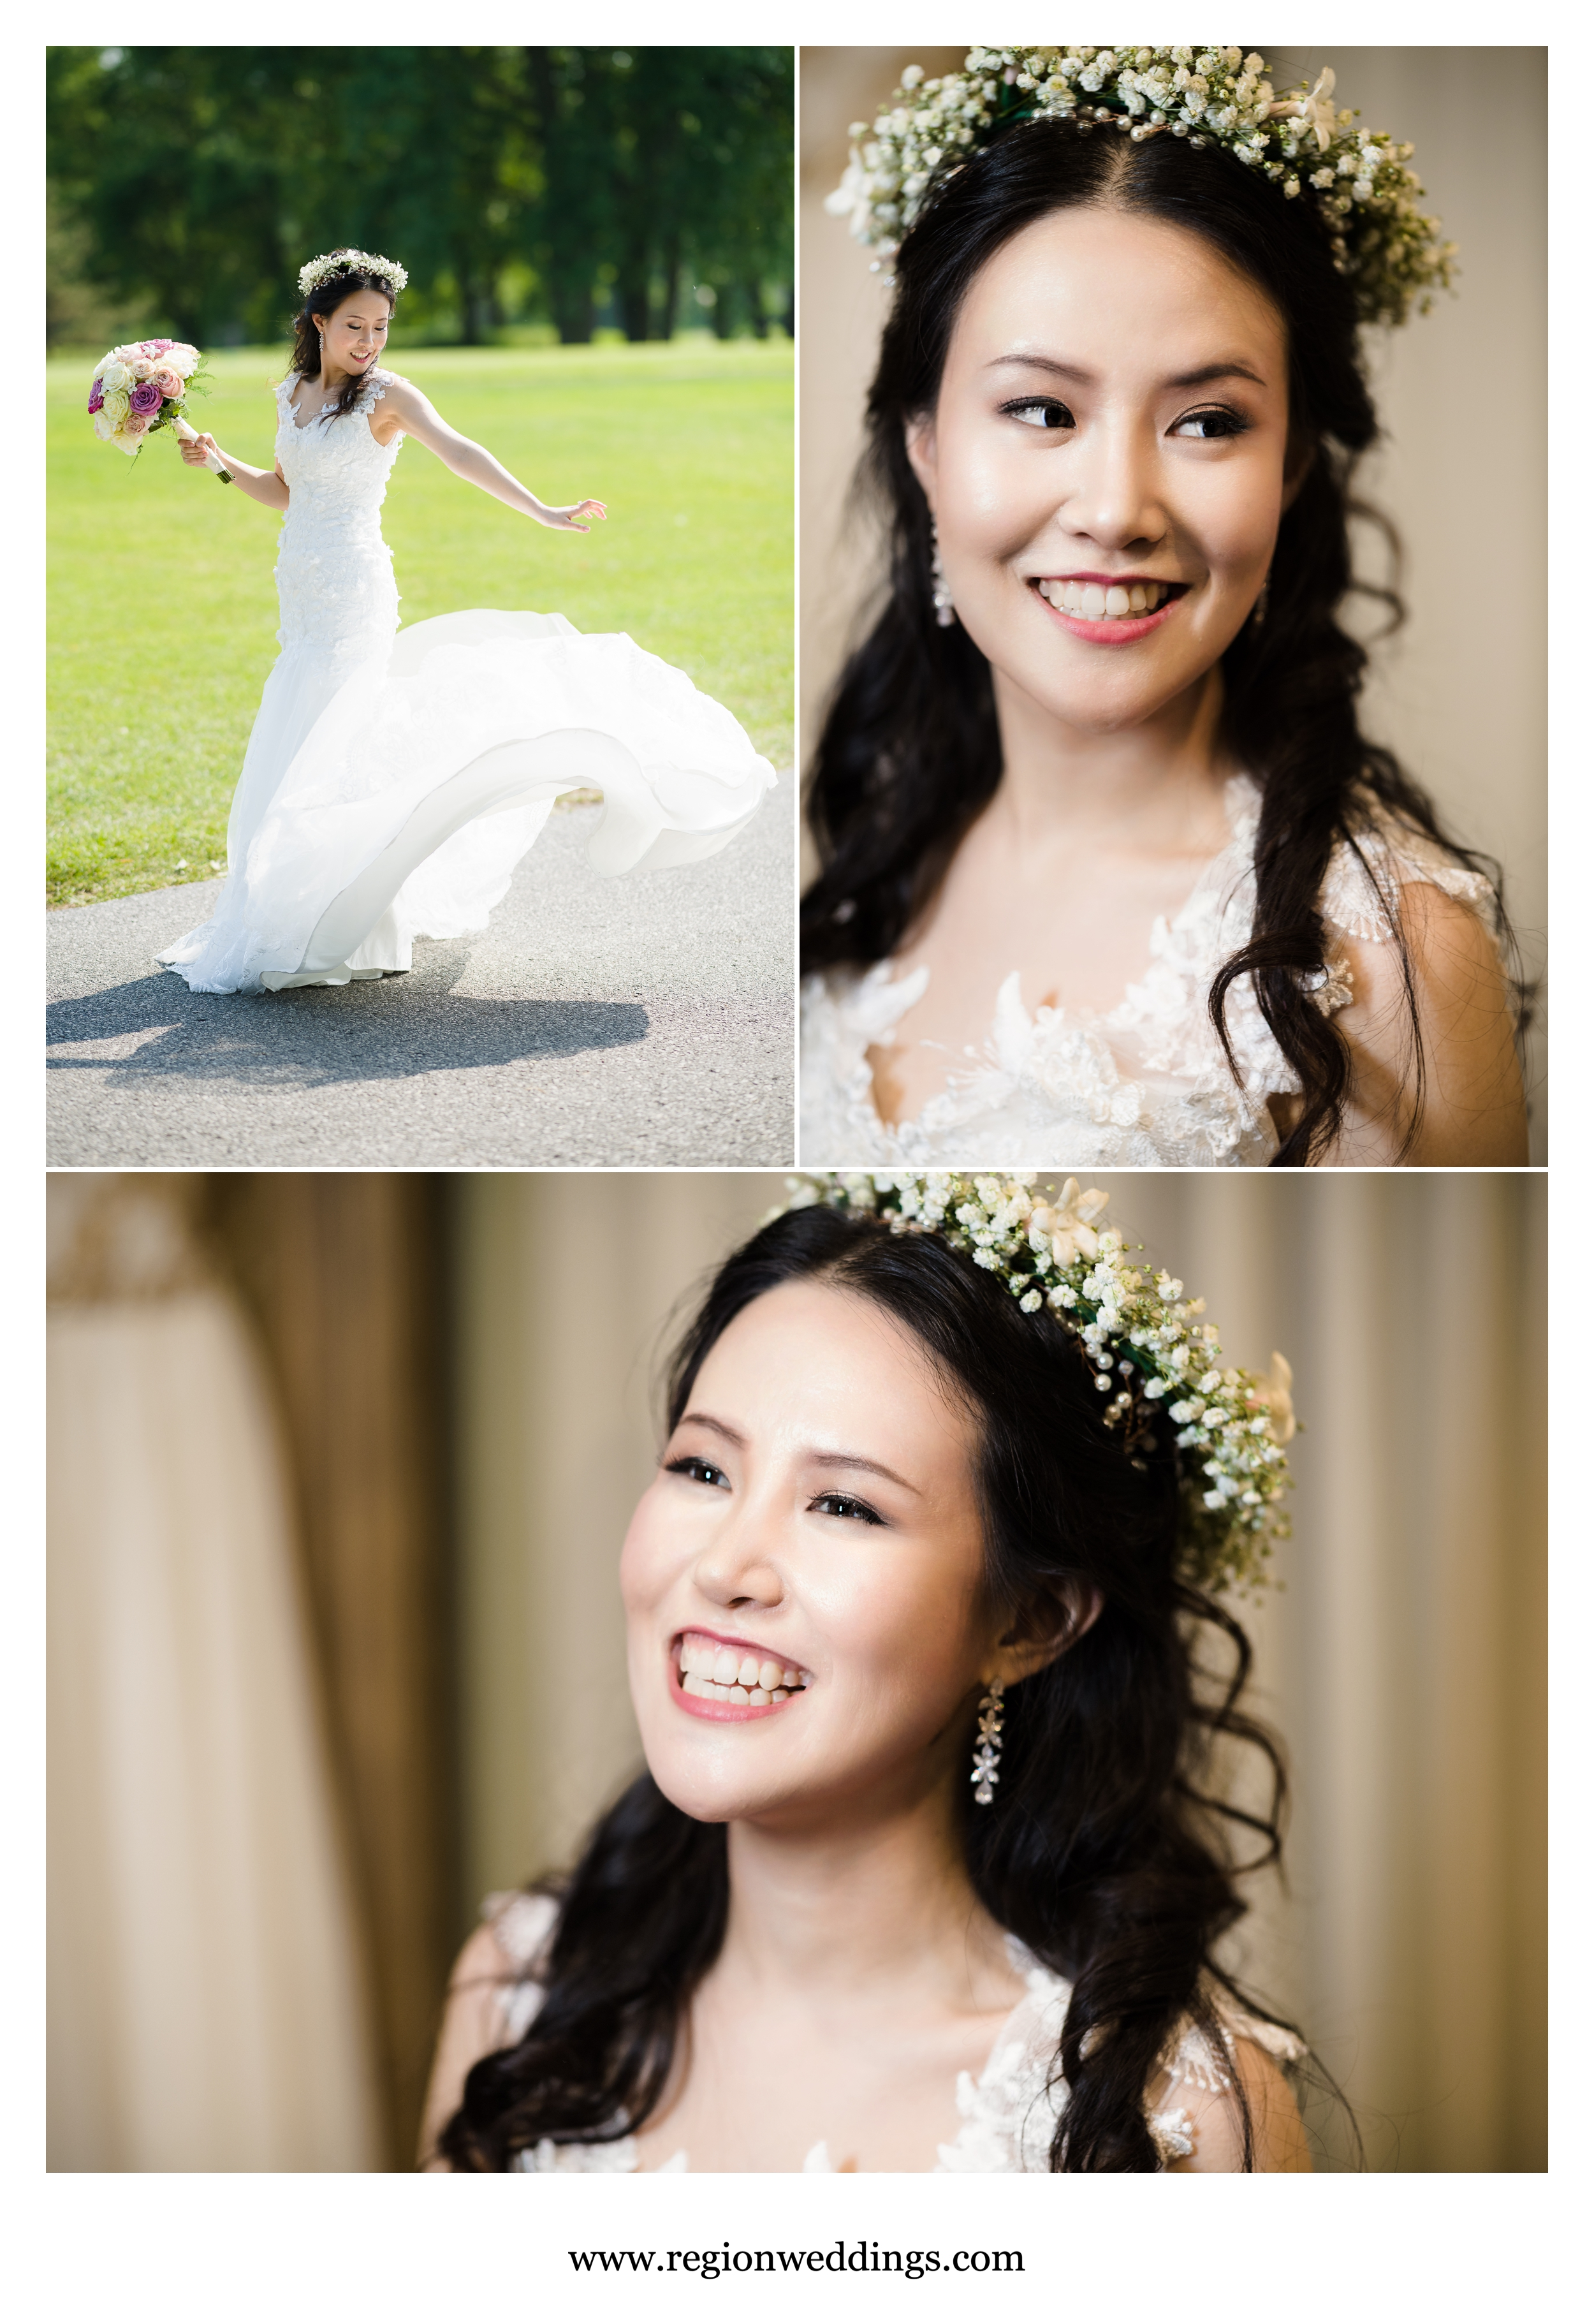 The bride shows off her boho crown and flowing white dress.